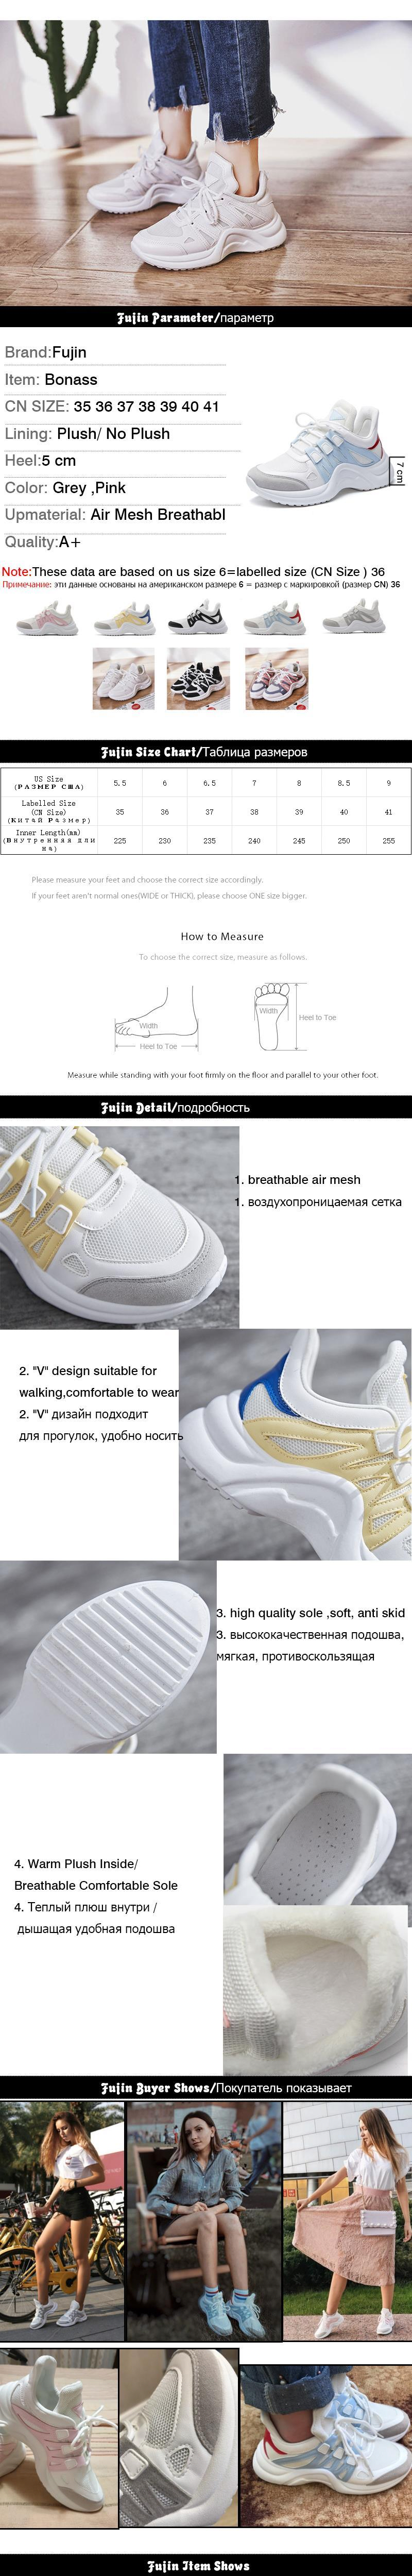 H1eda049d06a04a9f94a82e20abe1843aB - Fujin Sneakers Women Breathable Mesh Casual Shoes Female Fashion Sneaker Lace Up High Leisure Women Vulcanize Shoe Platform